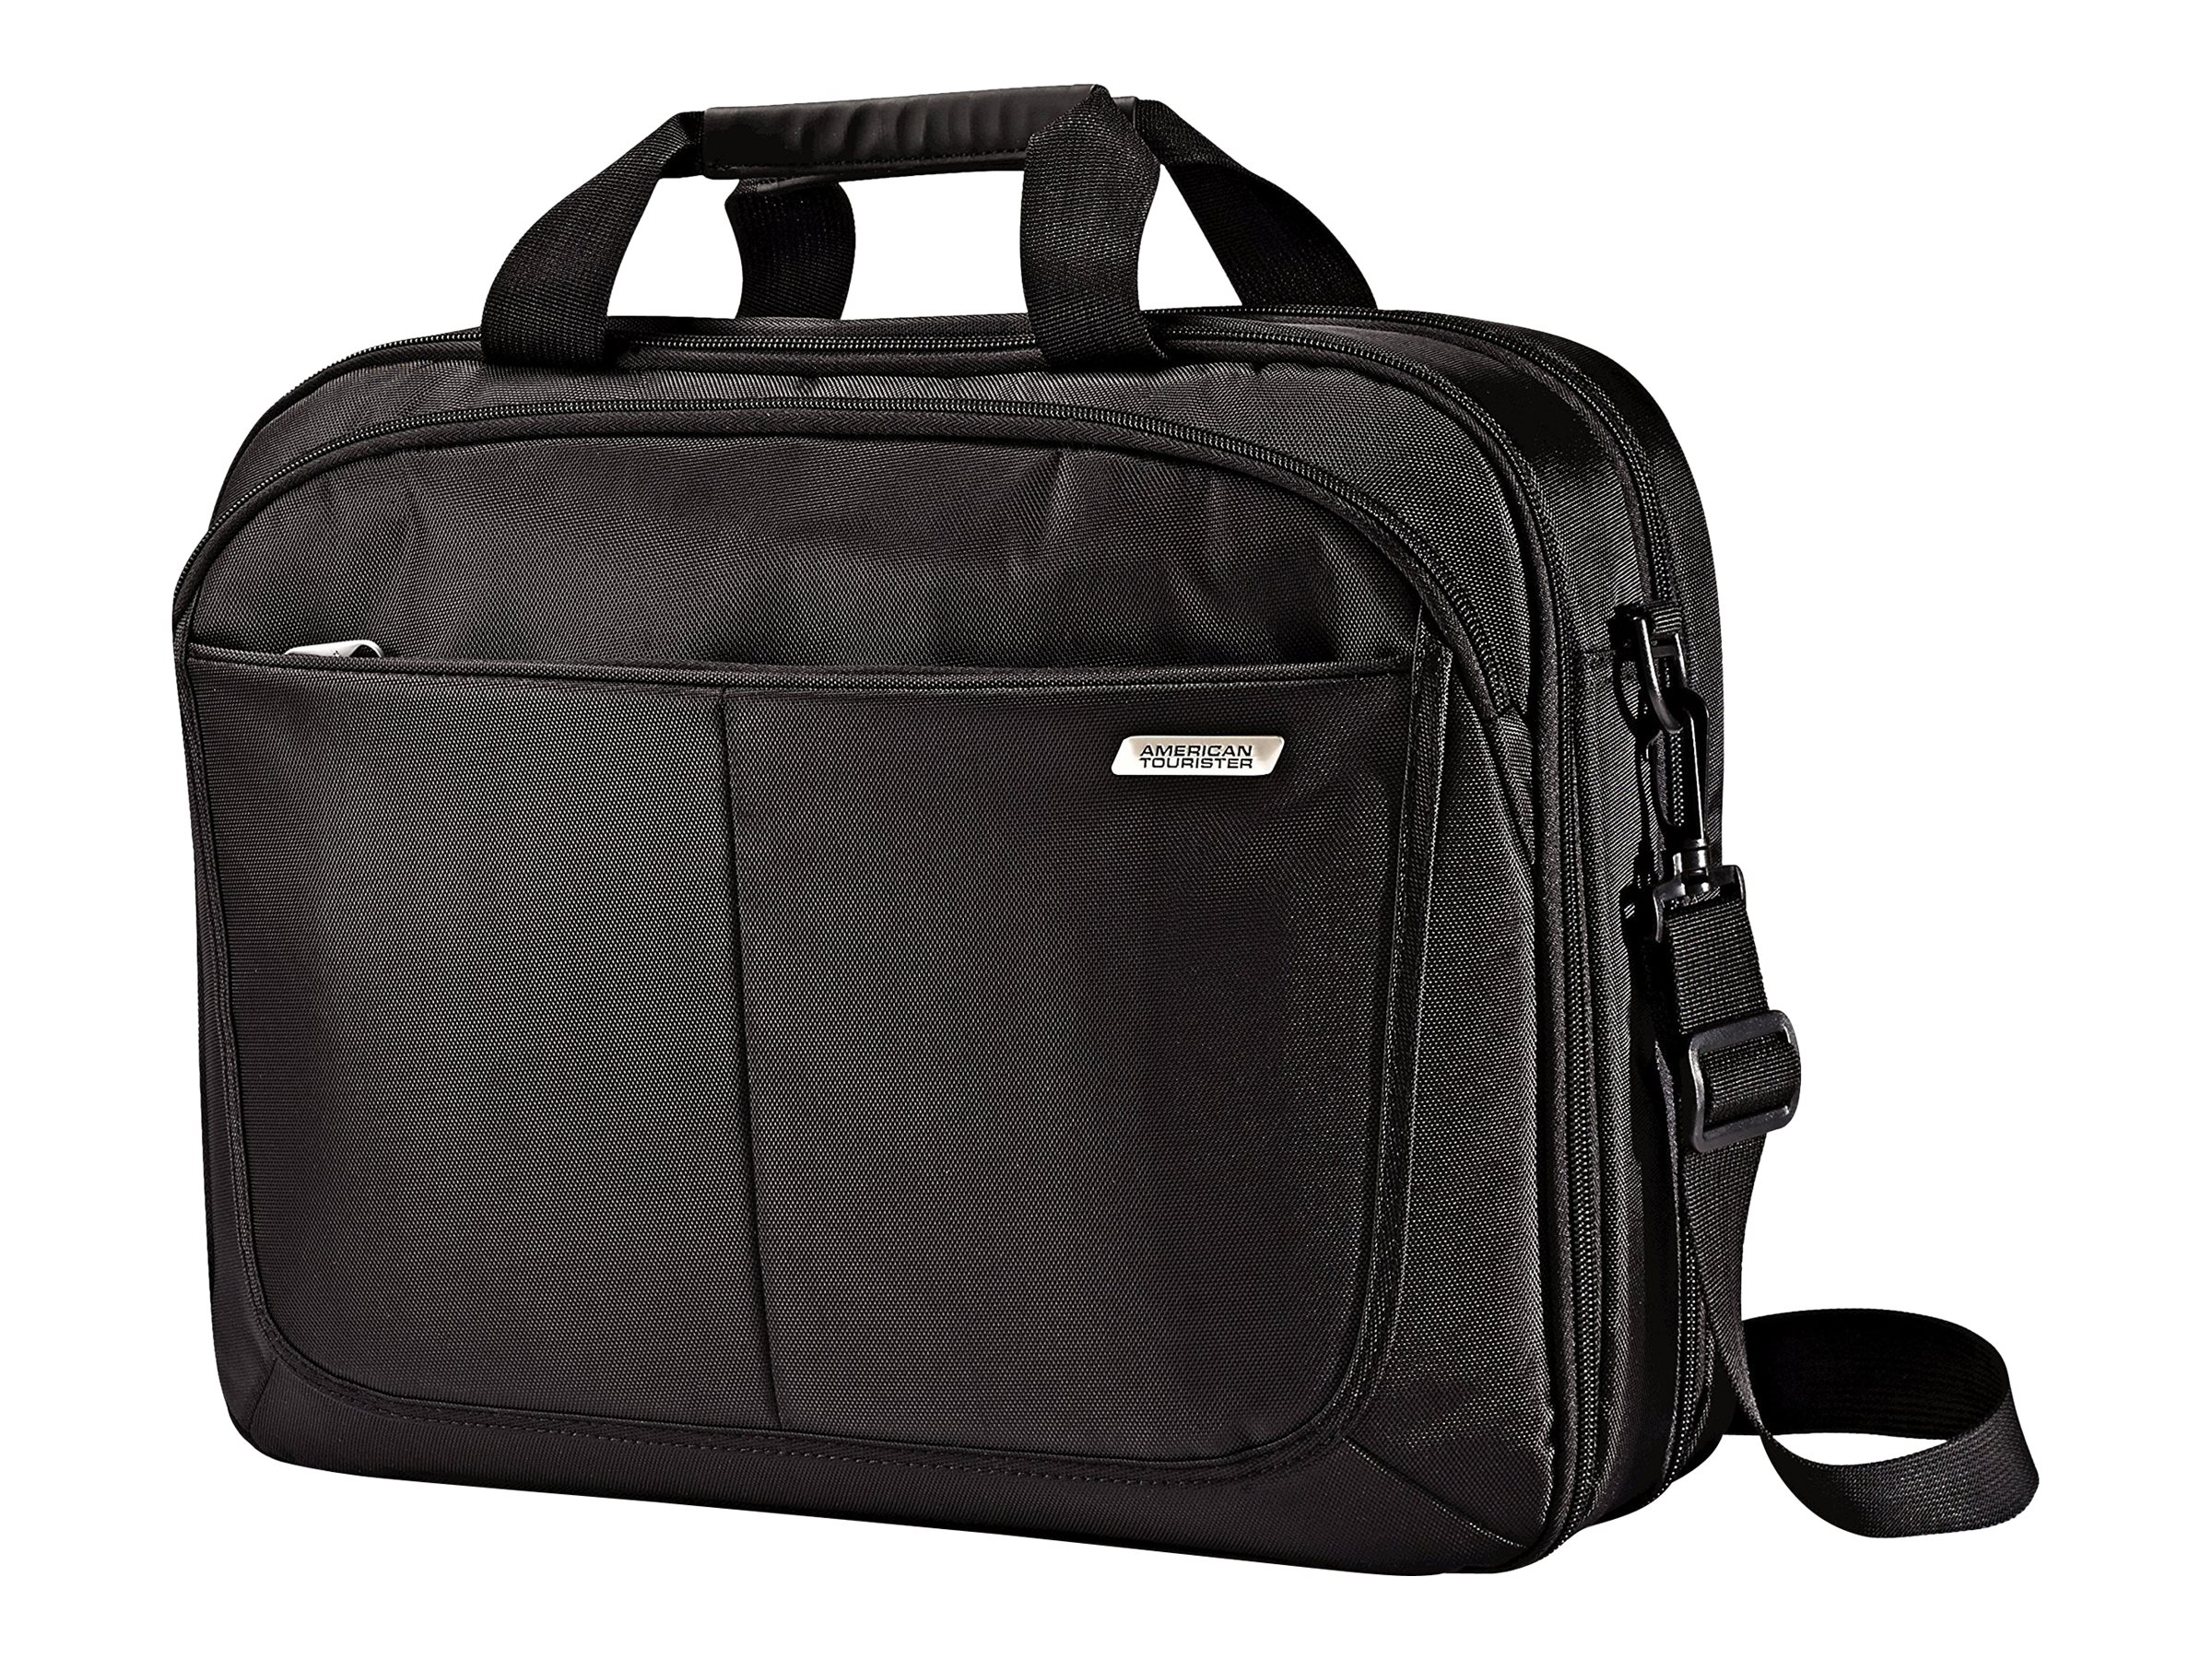 Stephen Gould 15.6 Checkpoint Friendly Brief, Durable 840 Denier Construction, 61328-1041, 17770693, Carrying Cases - Other